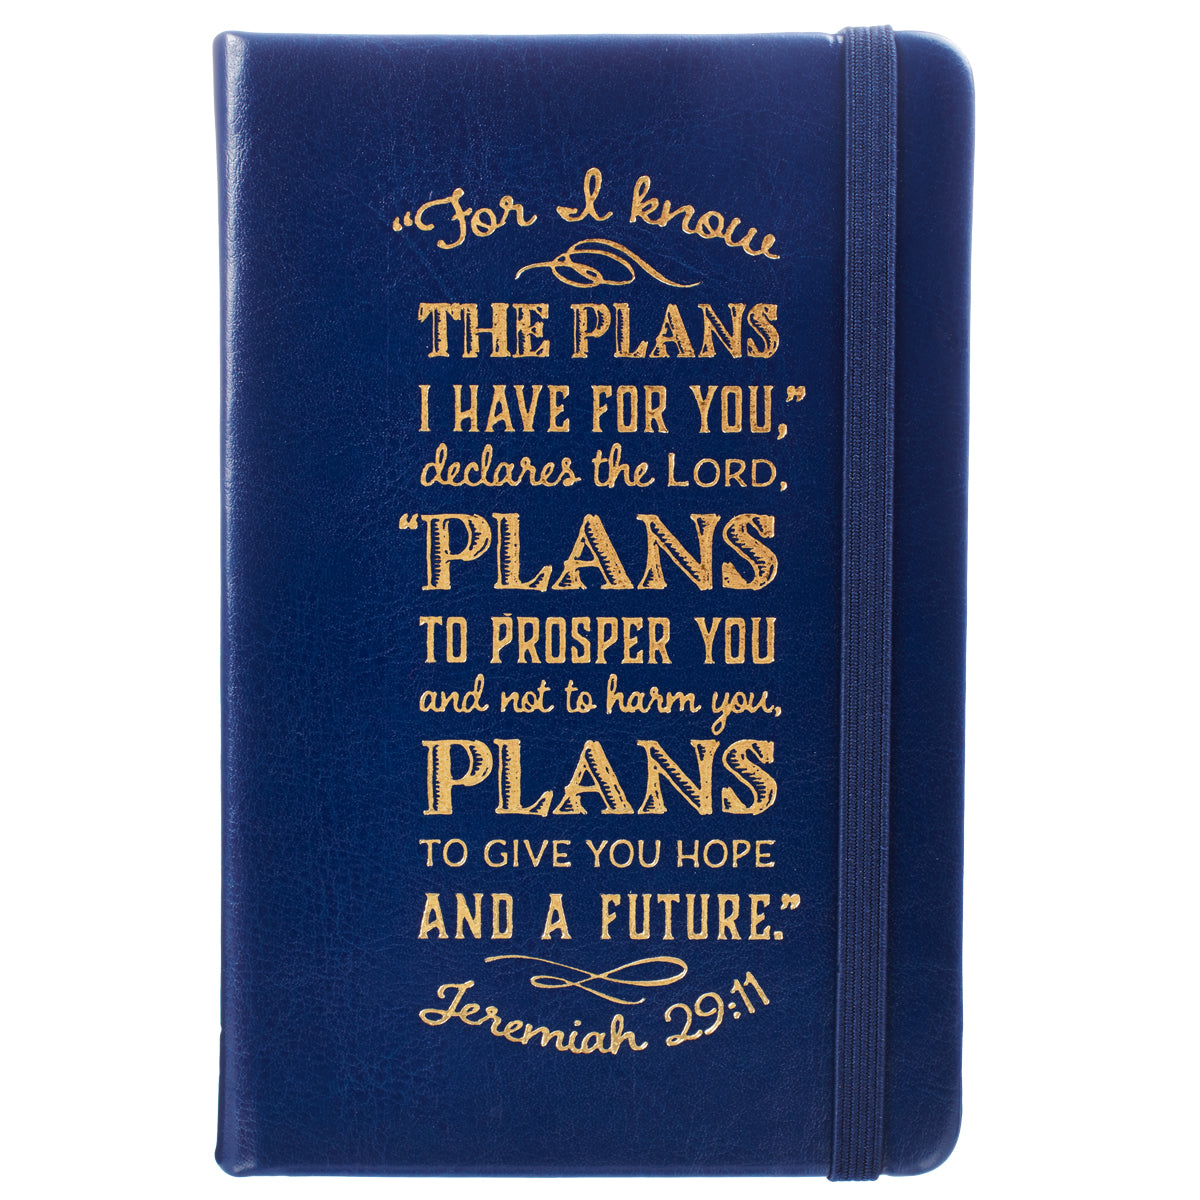 I Know The Plans Hardcover LuxLeather Notebook with Elastic Closure  - Jeremiah 29:11